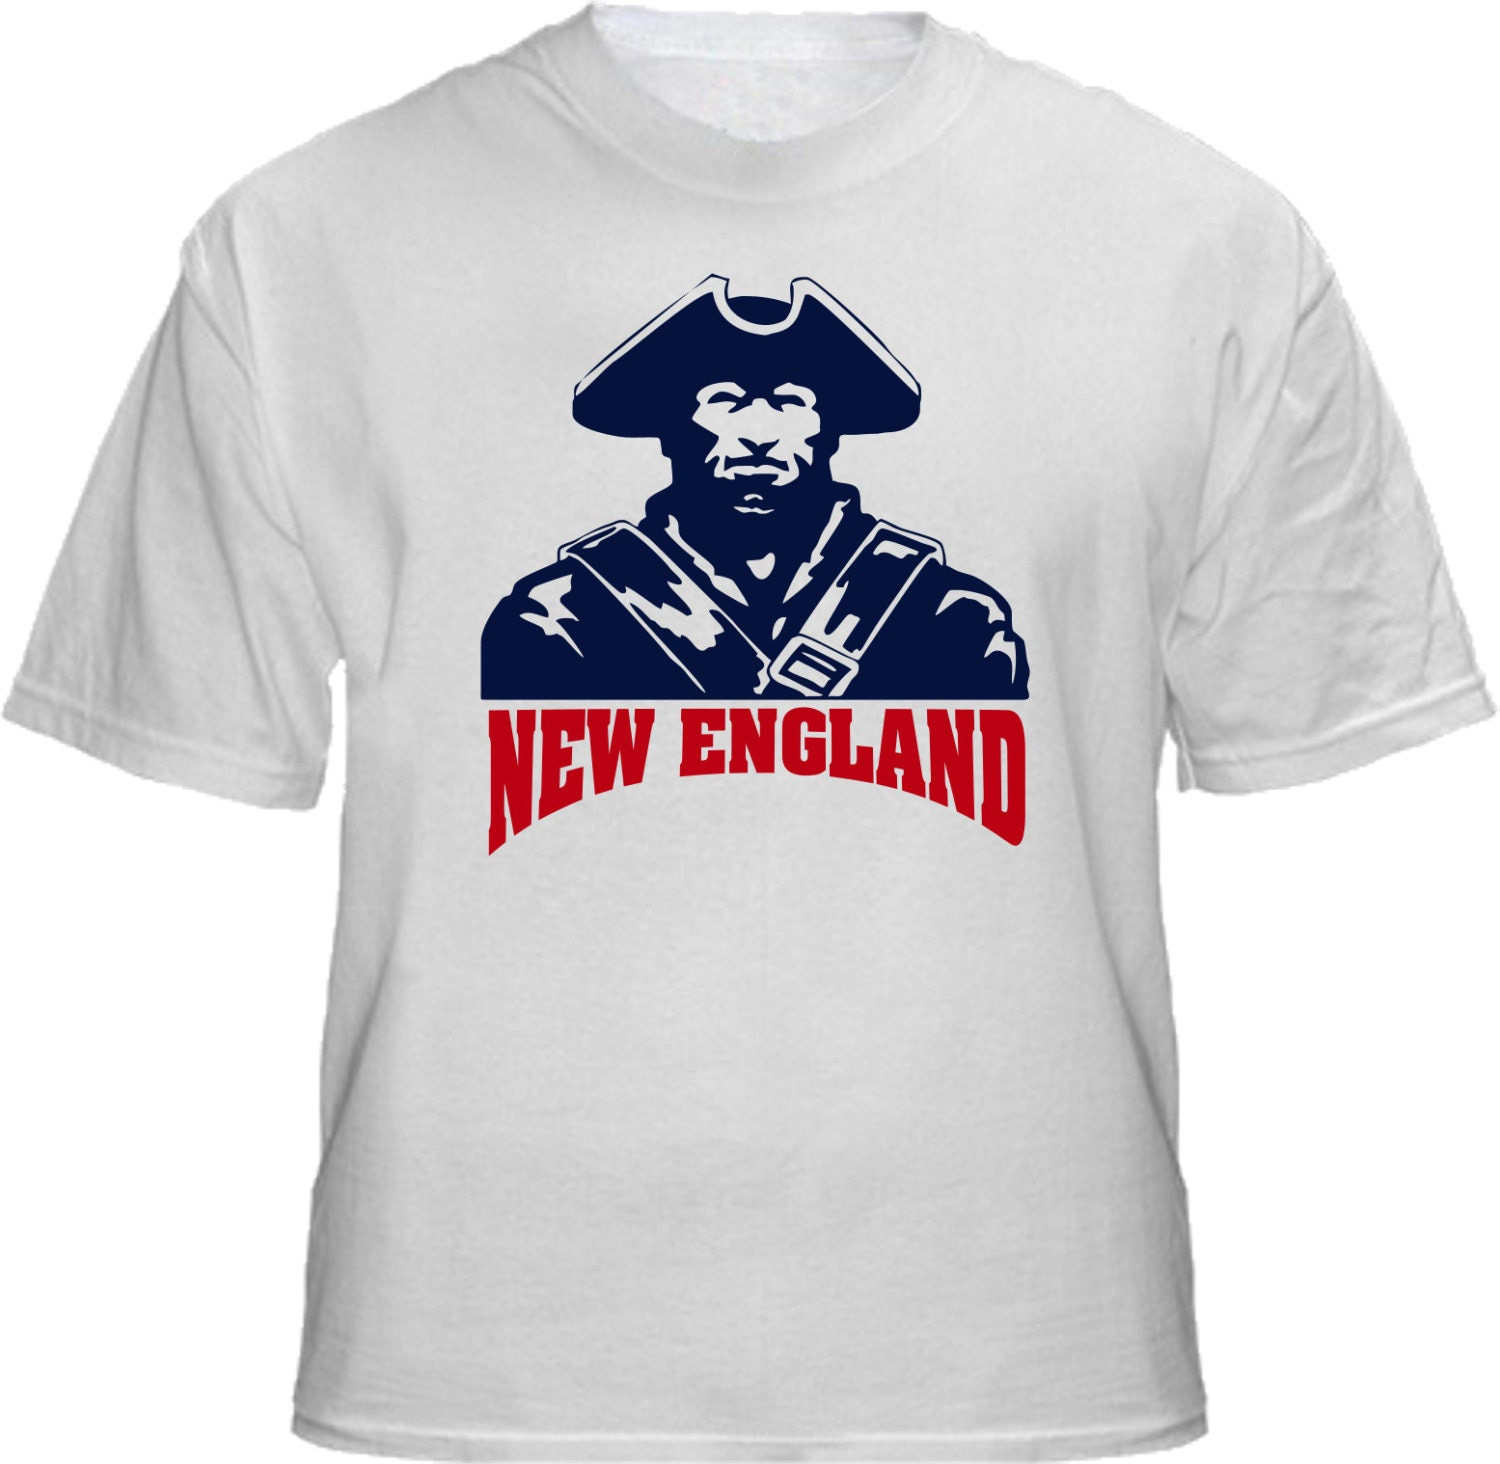 New england patriots shirt football shirt by 86levelstdesign New england patriots shirts